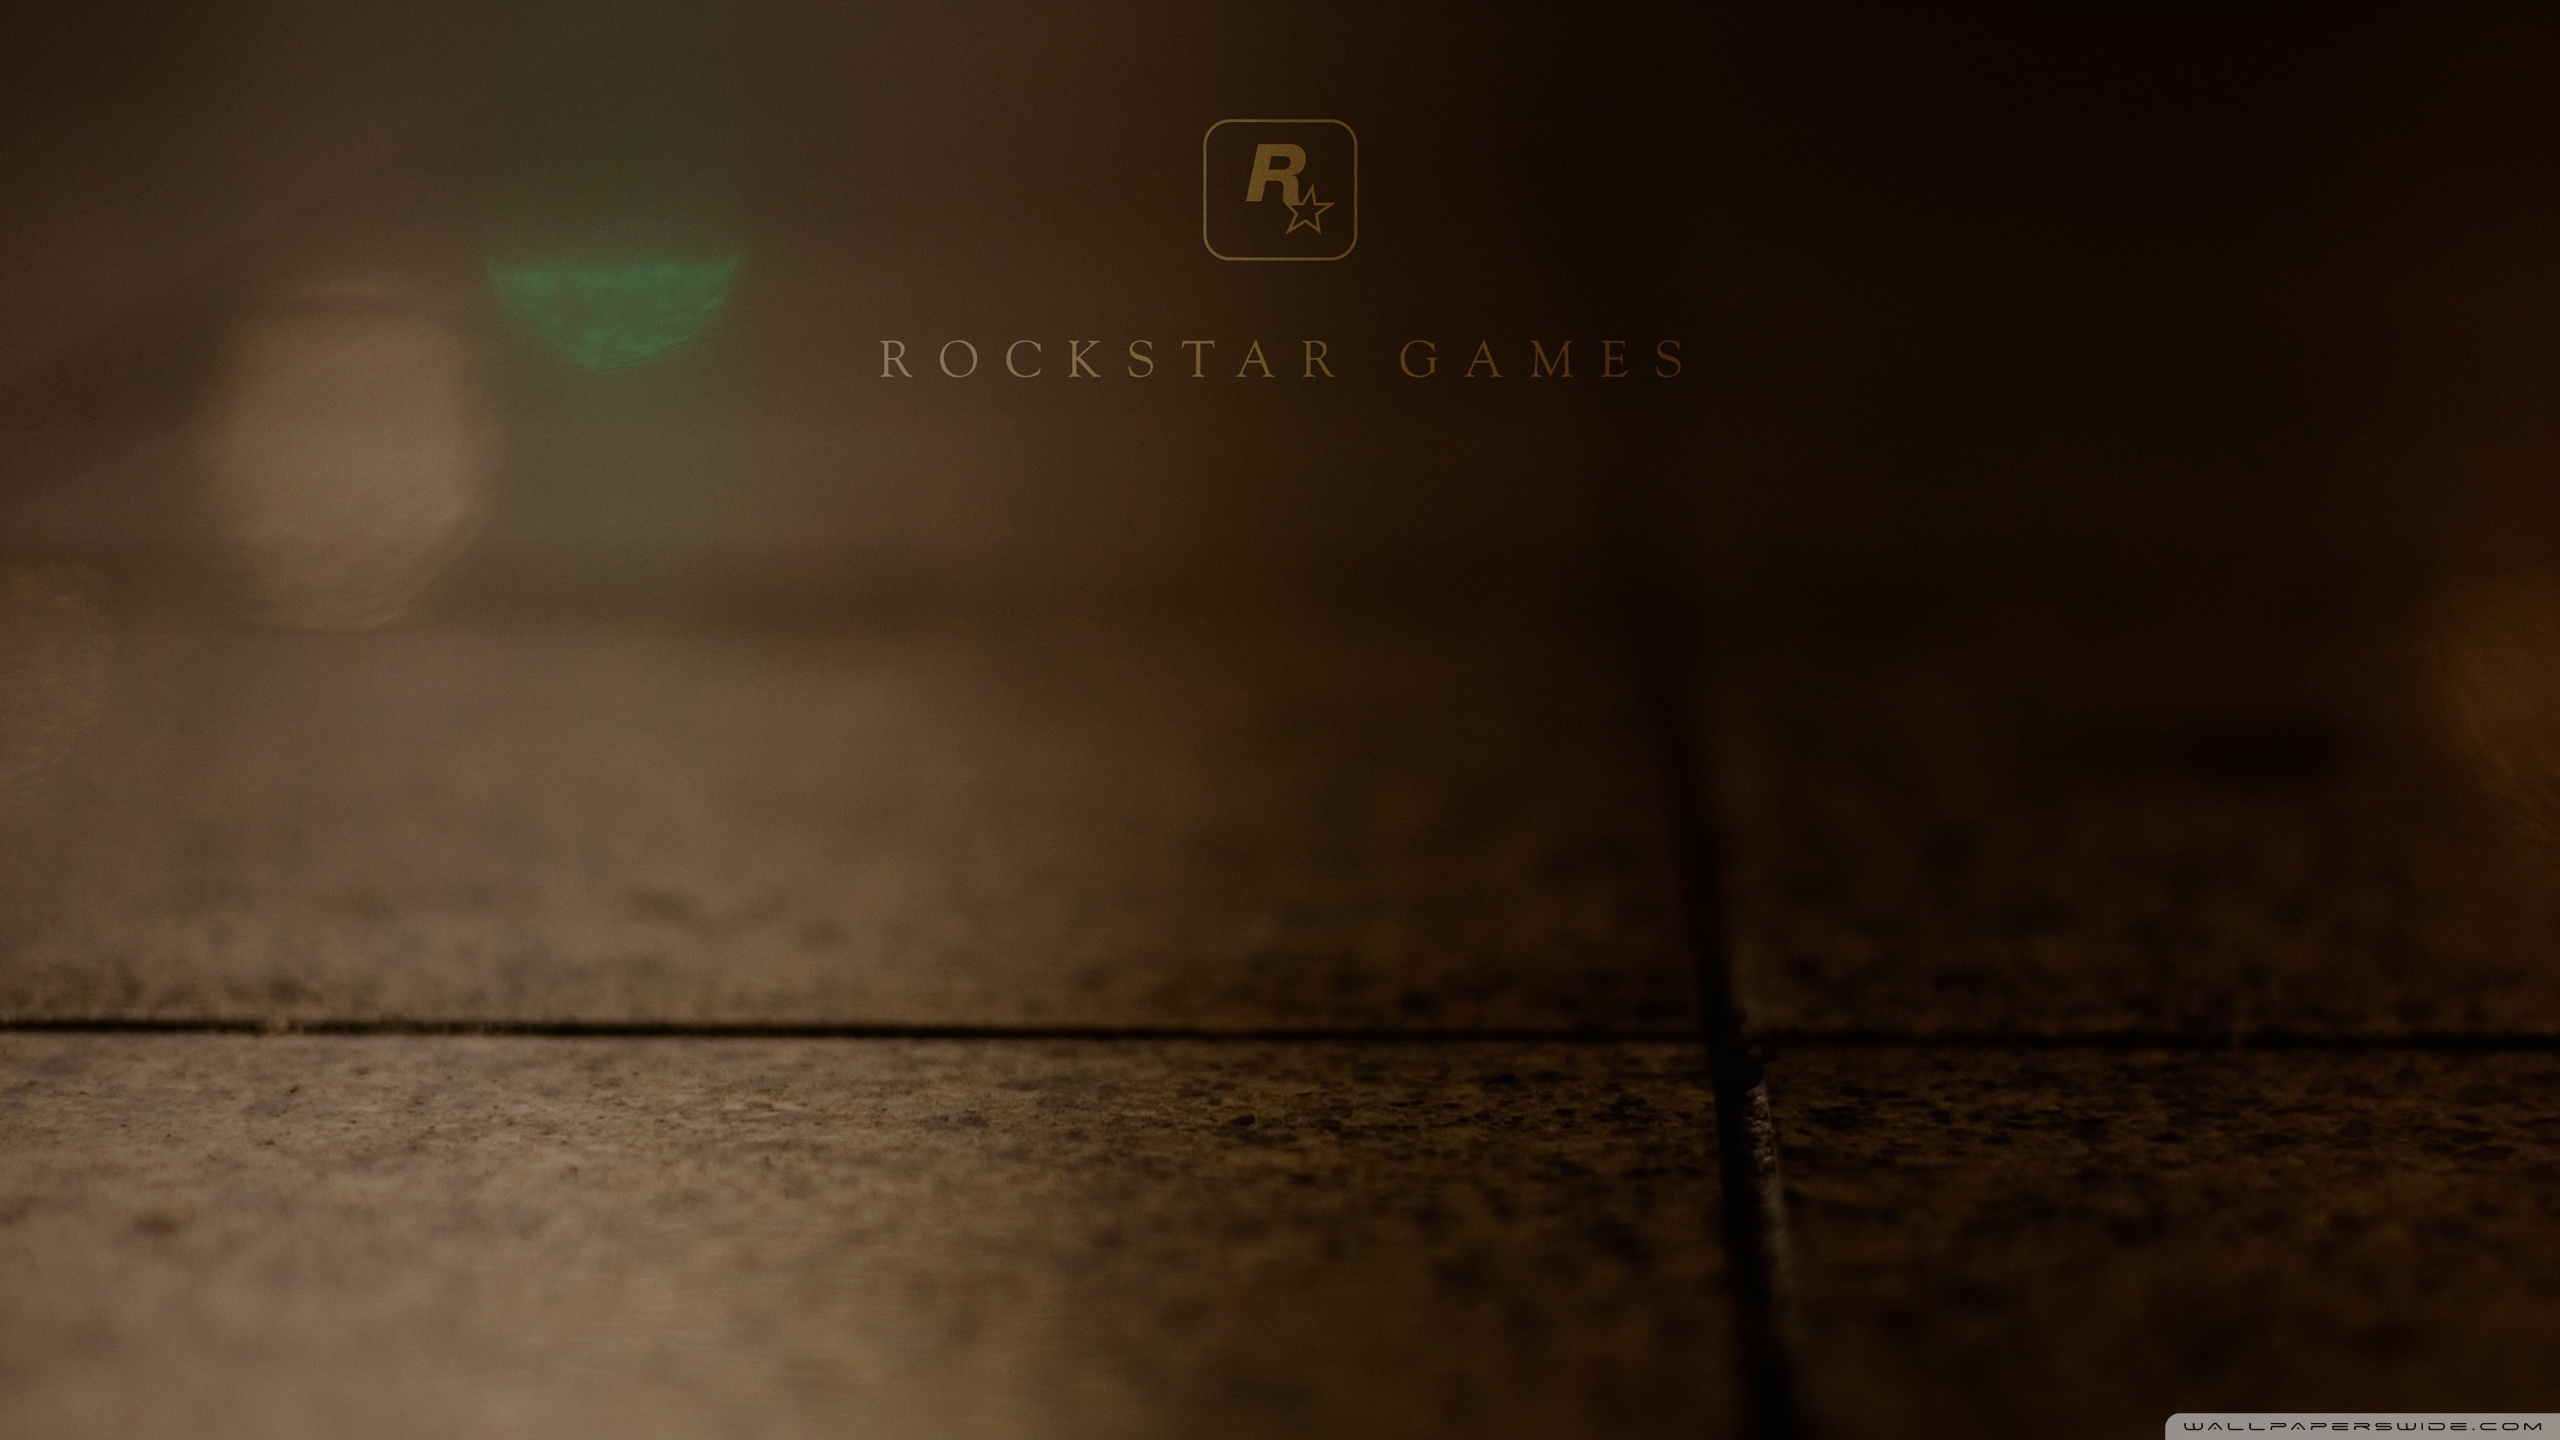 Rockstar Games Wallpaper 2560x1440 Rockstar Games 2560x1440